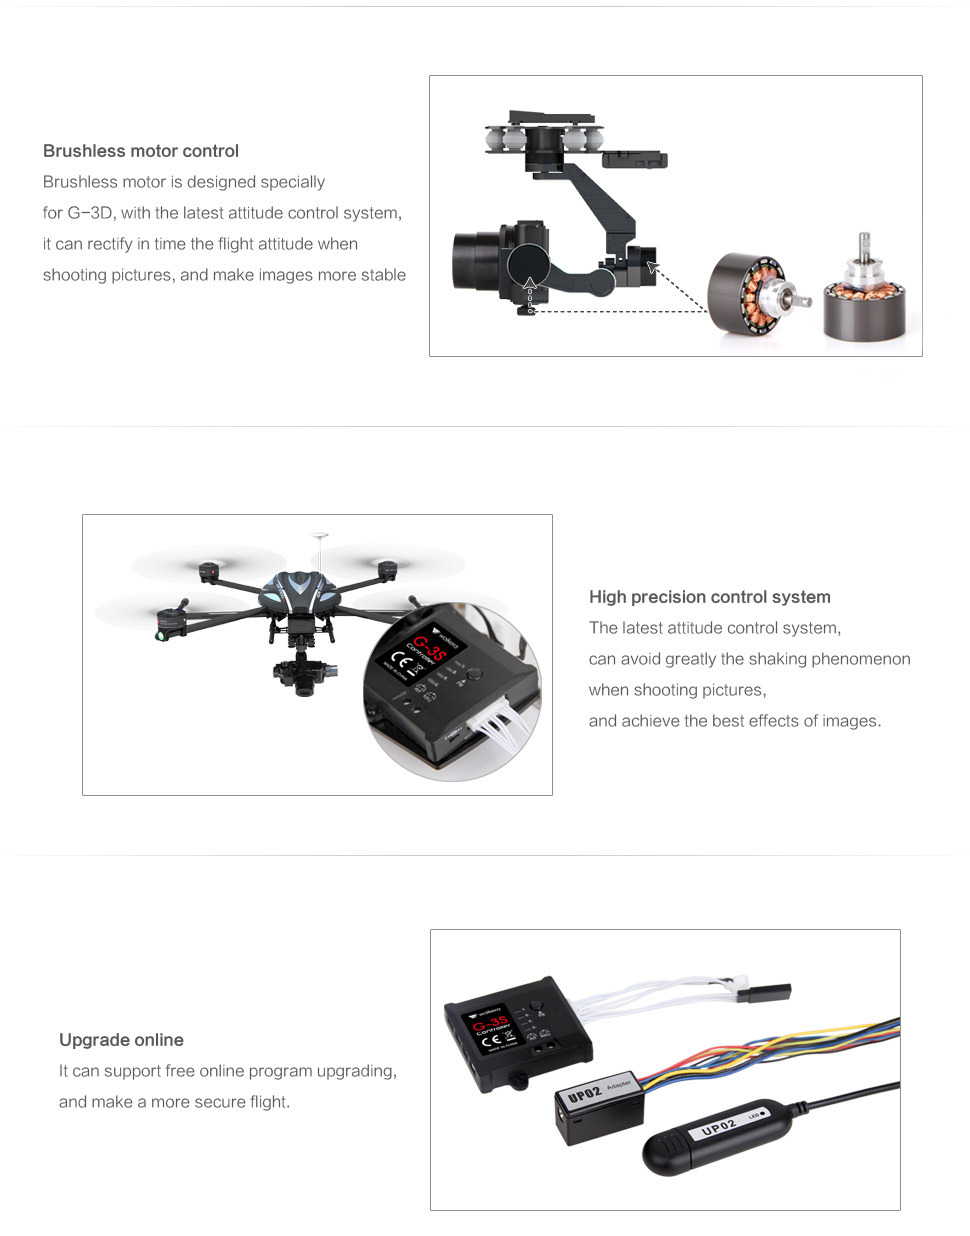 Walkera Sony RX100 G-3S Brushless Gimbal for cinematic